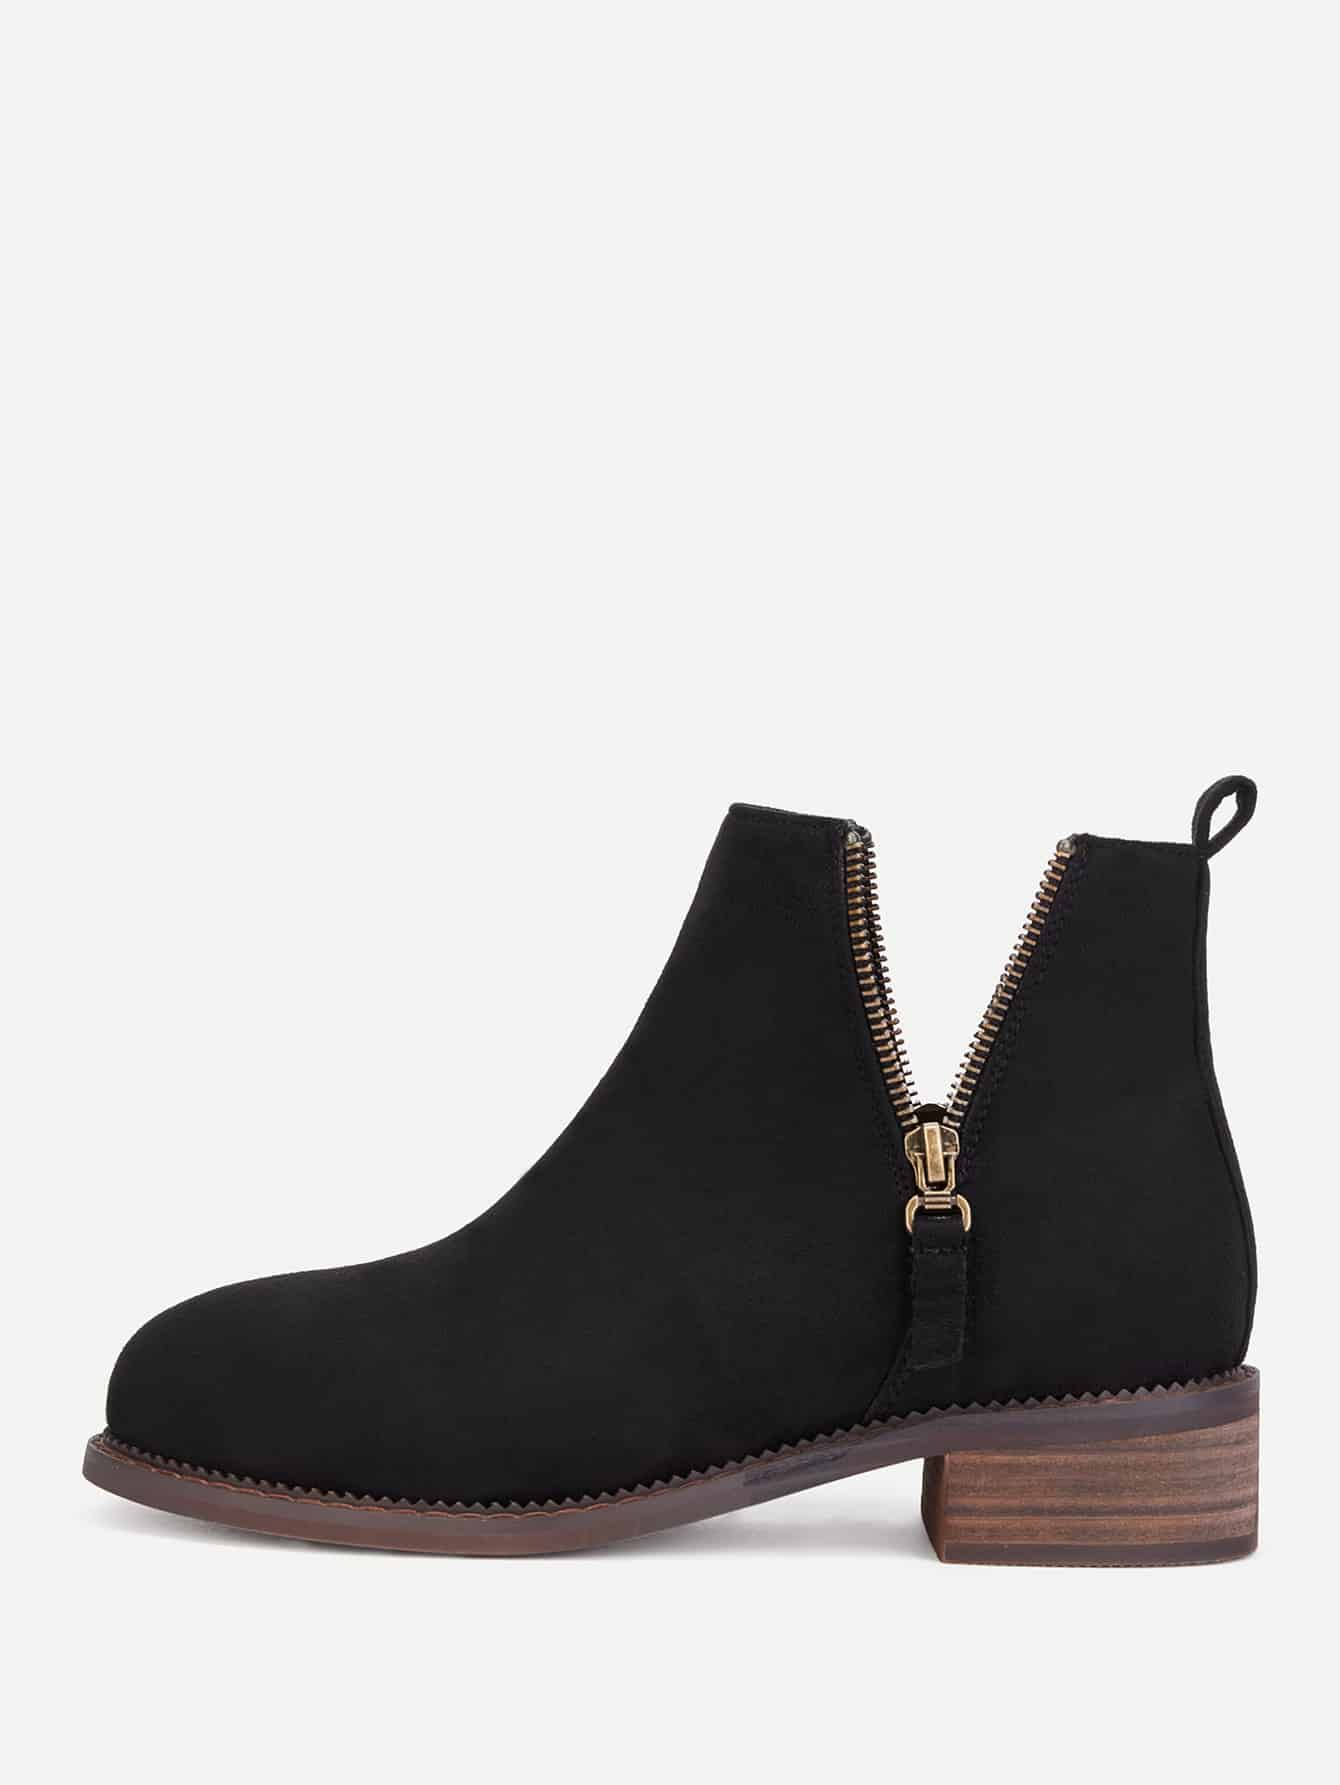 Double Zipper Cork Heeled Ankle Boots